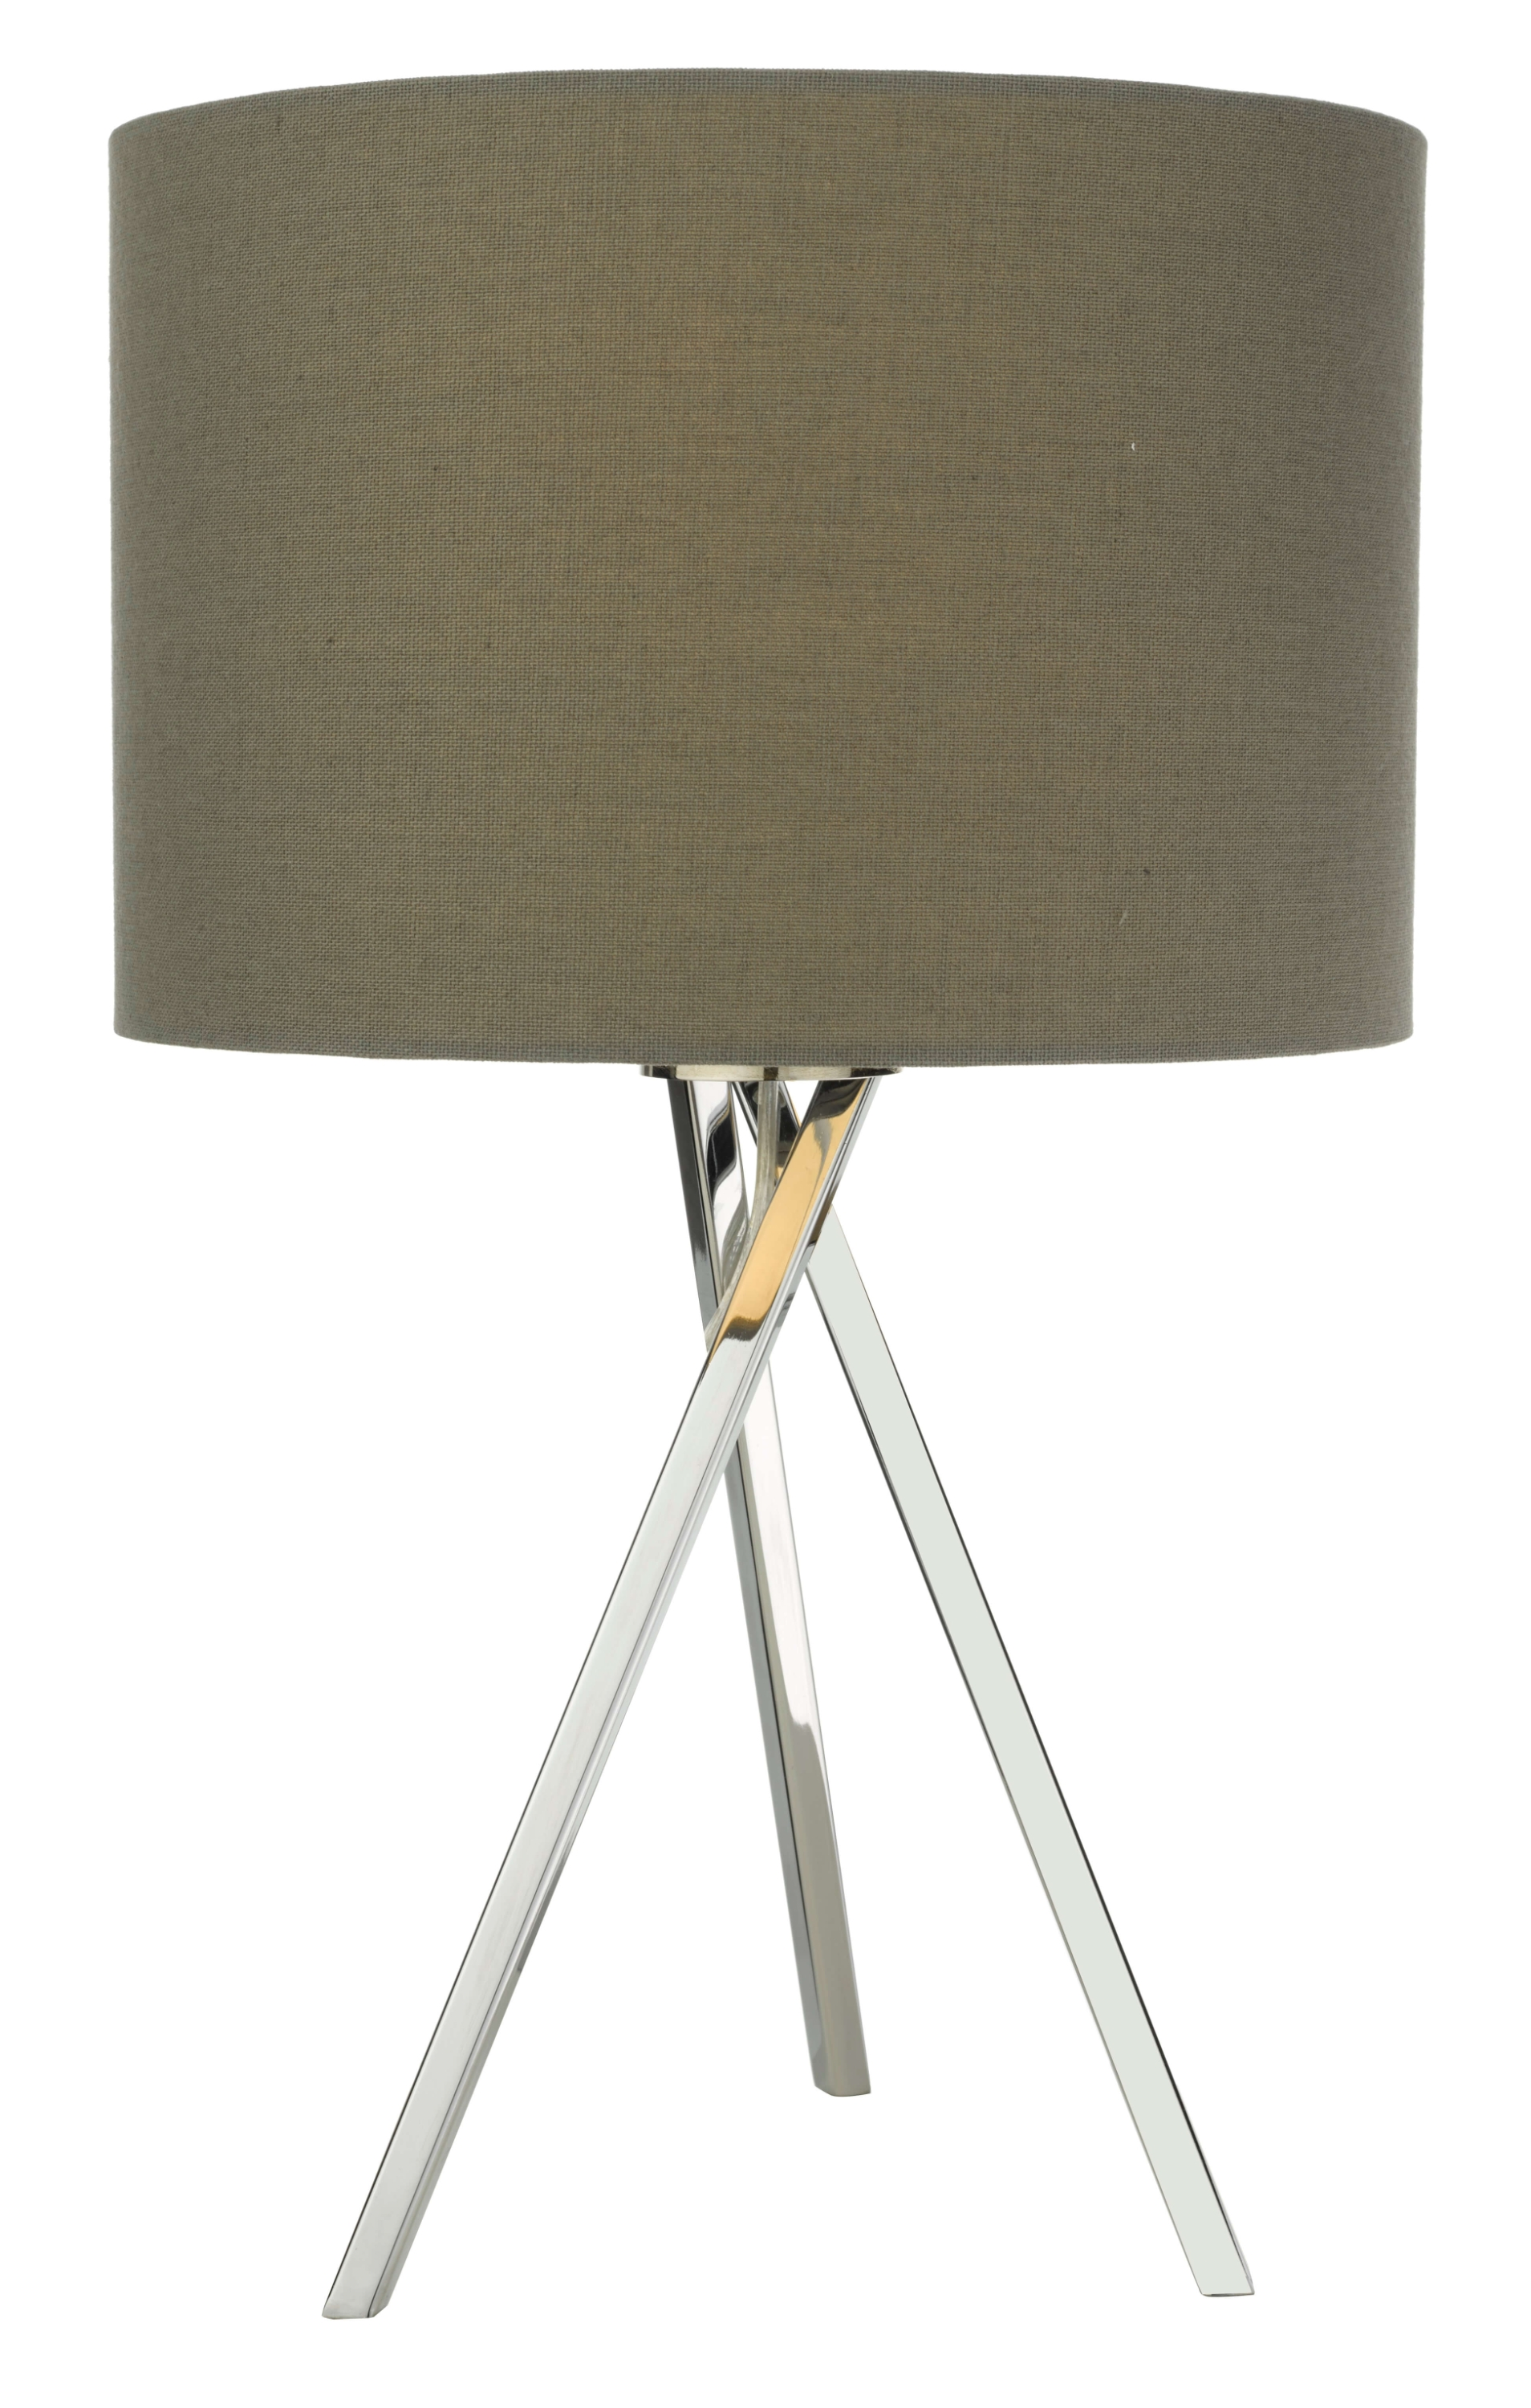 Light Grey Bedside Table: Modern Chrome Finish Tripod Table Lamp Bedside Light With